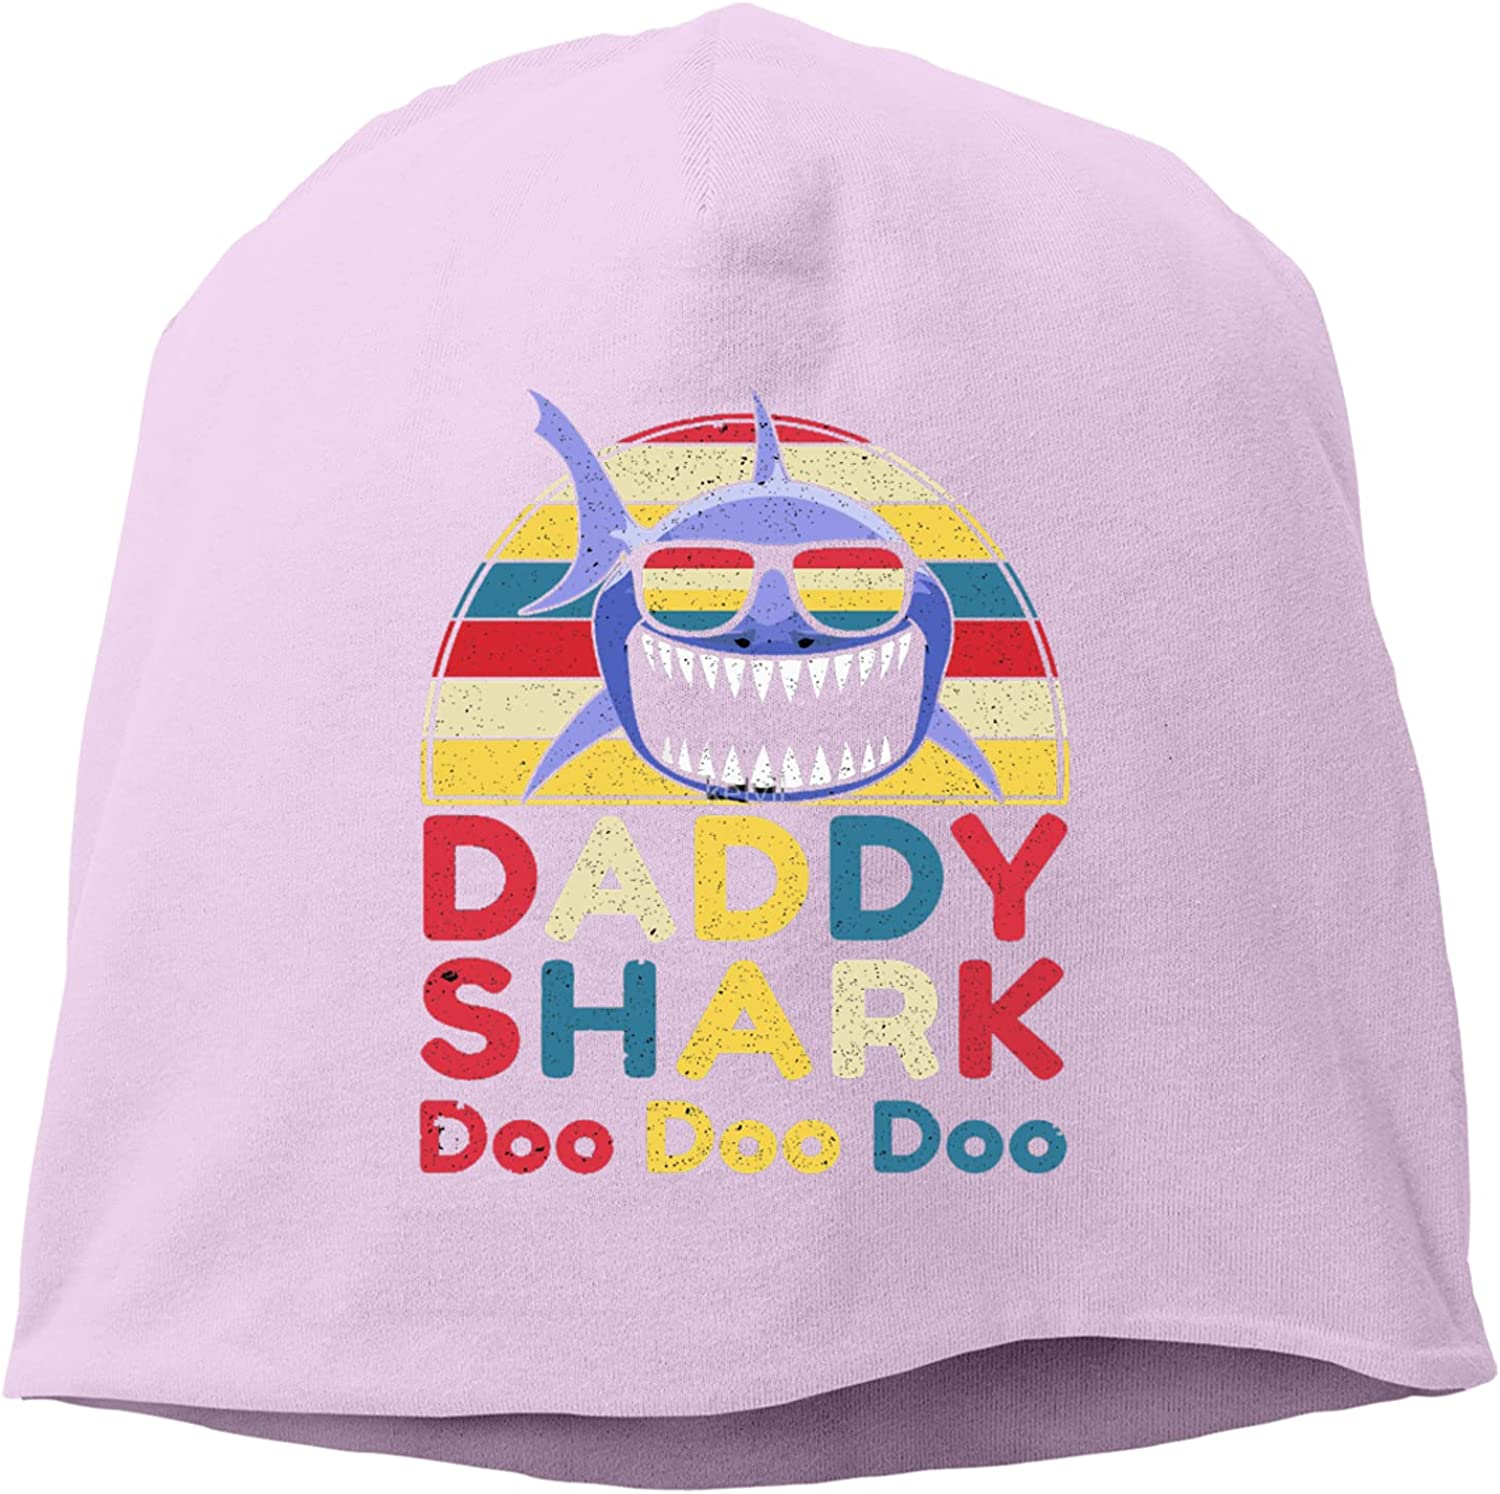 Daddy Shark Gift for Dad Adj Hedging Challenge the lowest price of Japan ☆ Cap Max 54% OFF Knitted Hat,Unisex